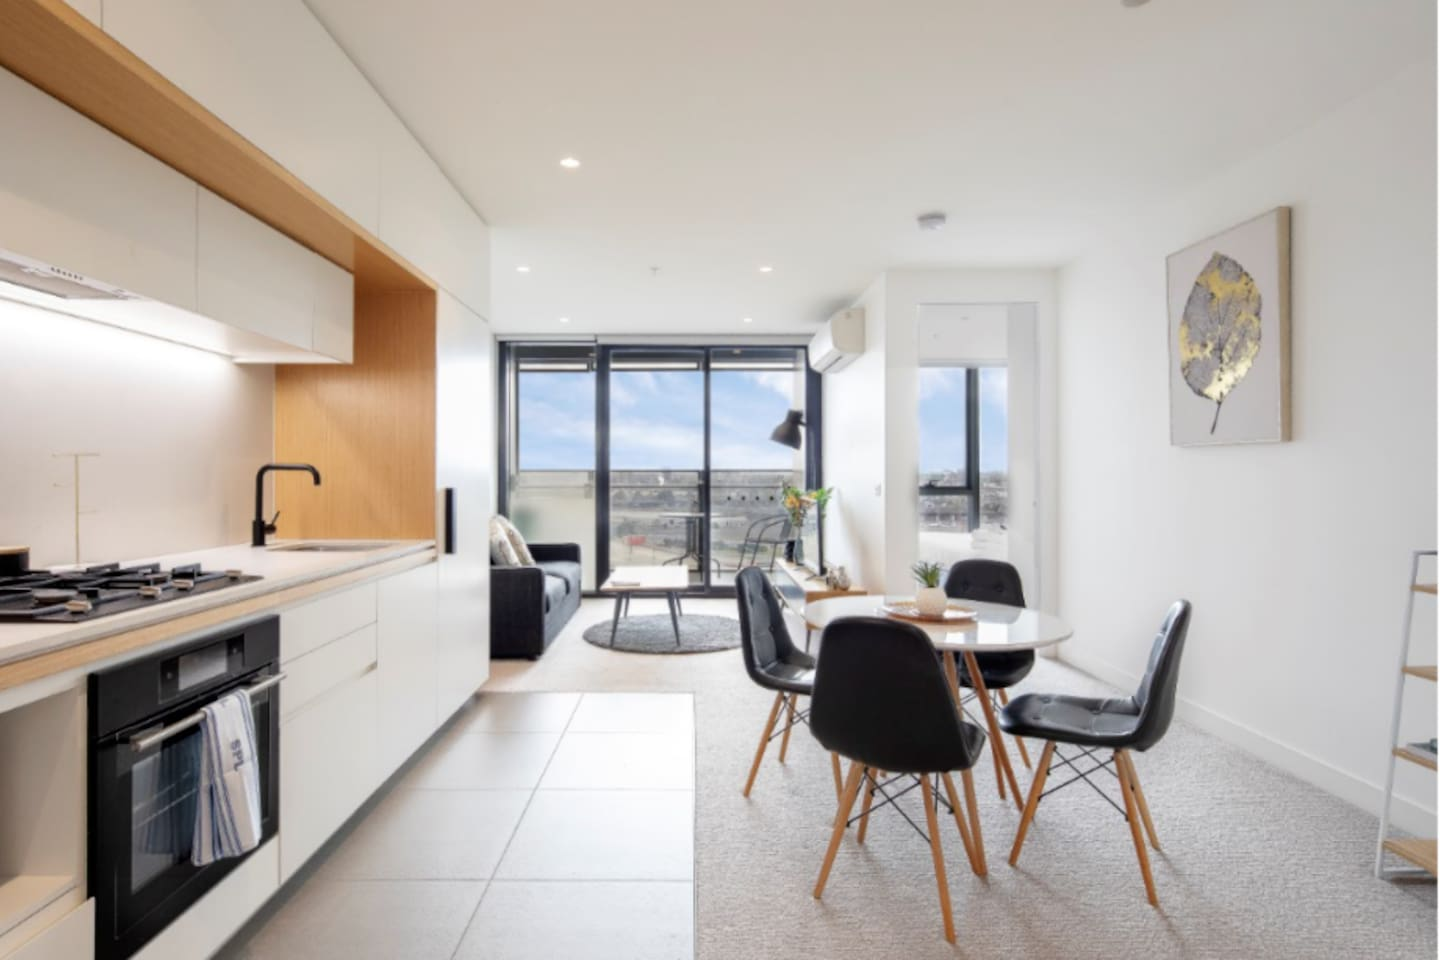 Bright and spacious open plan living and dining area with kitchen with a view of the amazing Docklands Star Wheel